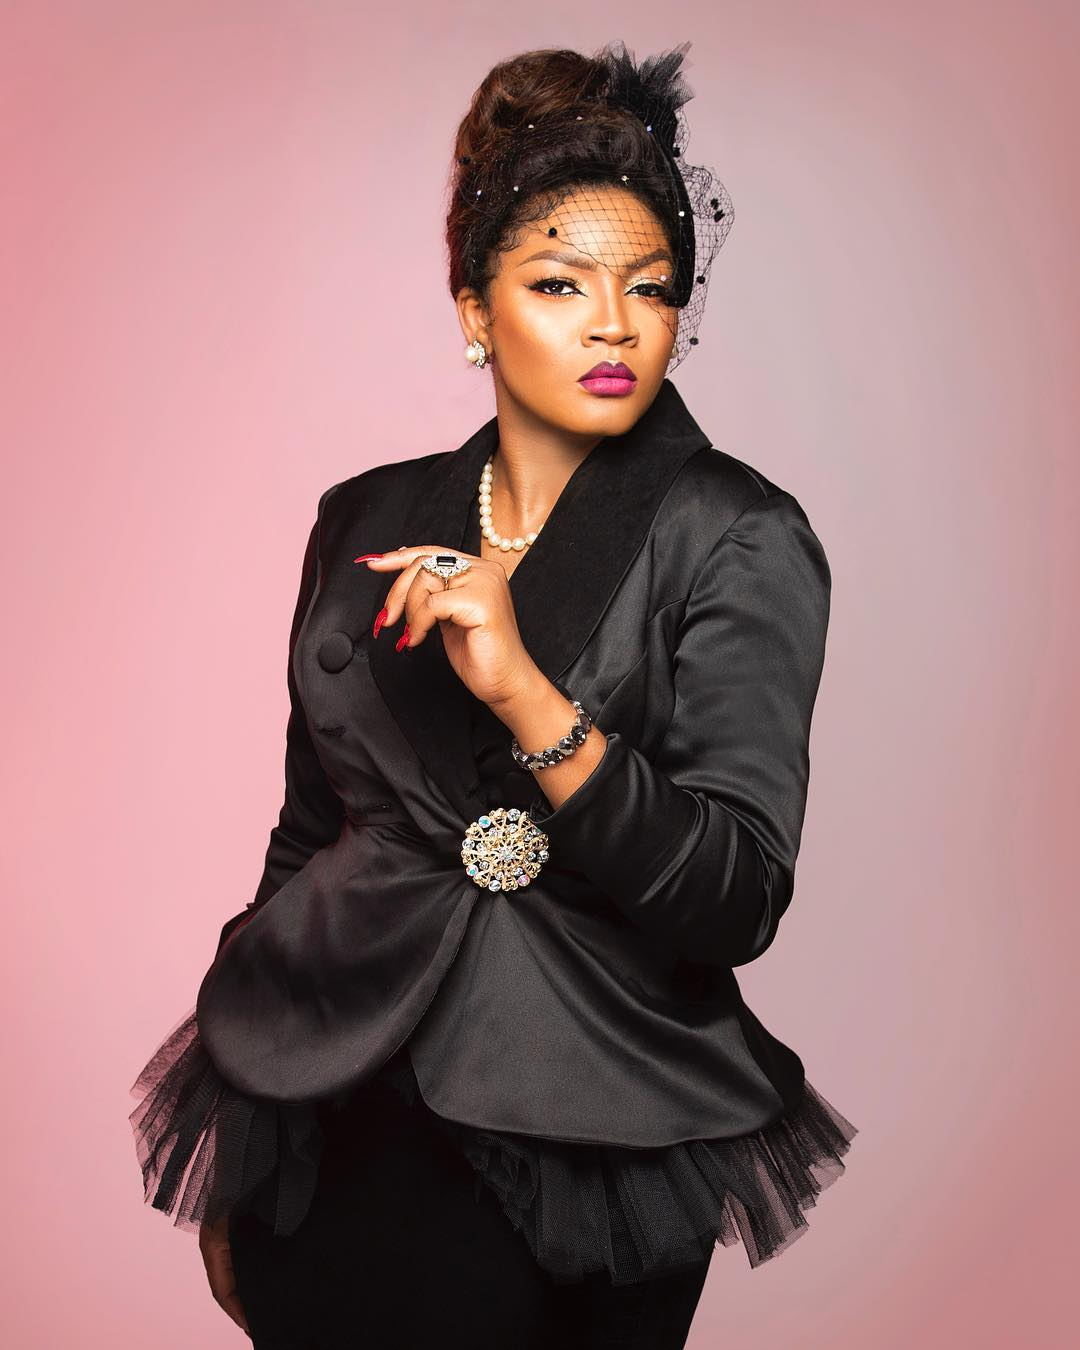 57f92c59915c64dbbdf5b4008f0fc134 - Omotola Jalade-Ekeinde can't keep calm as daughter bags 2 degrees at 19